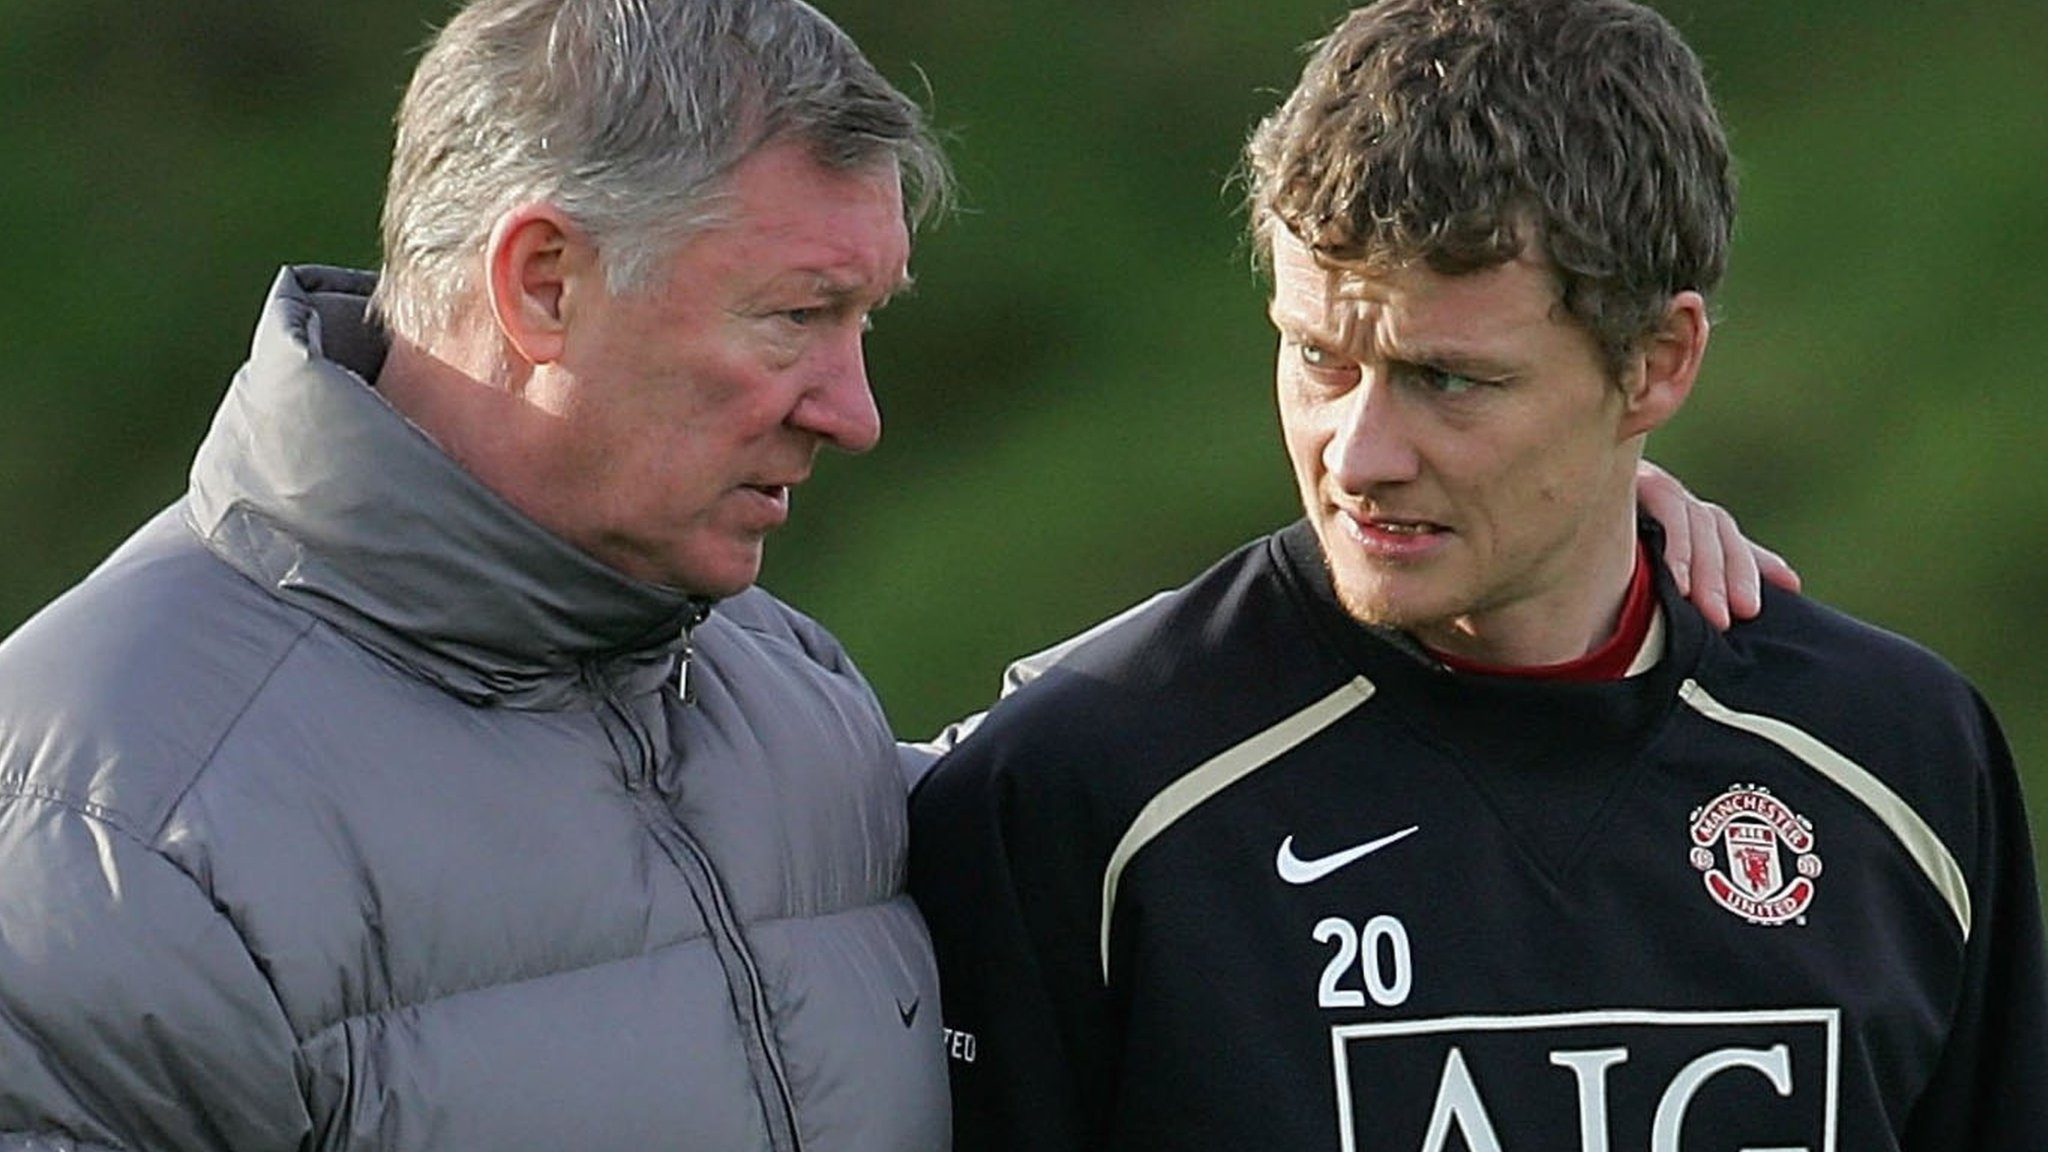 Sir Alex Ferguson: Former Man Utd boss taught me everything - Ole Gunnar Solskjaer